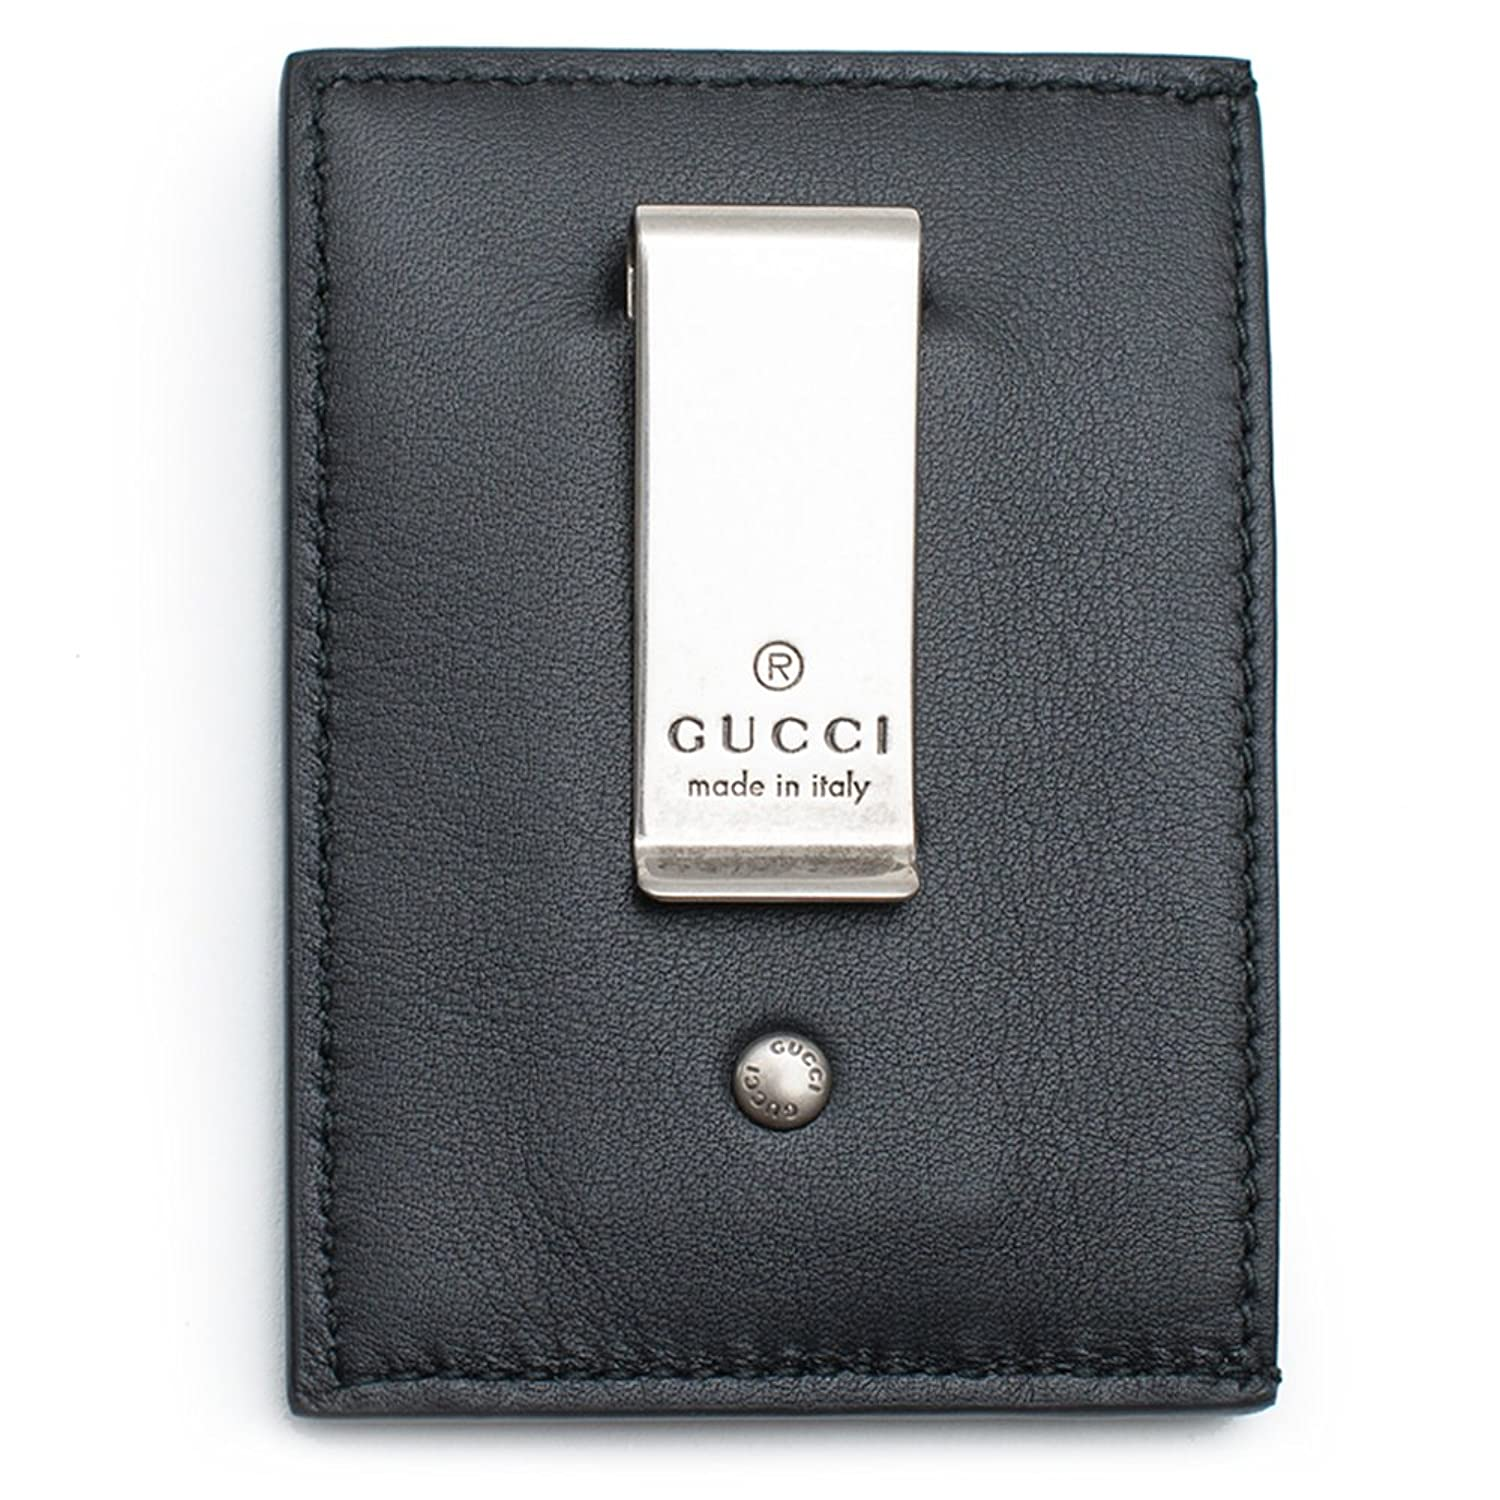 133956aba80b Gucci XL Money Clip has an embossed logo that extends across the front of  the wallet. Made in our smooth, classic leather On mould Construction  Vintage ...